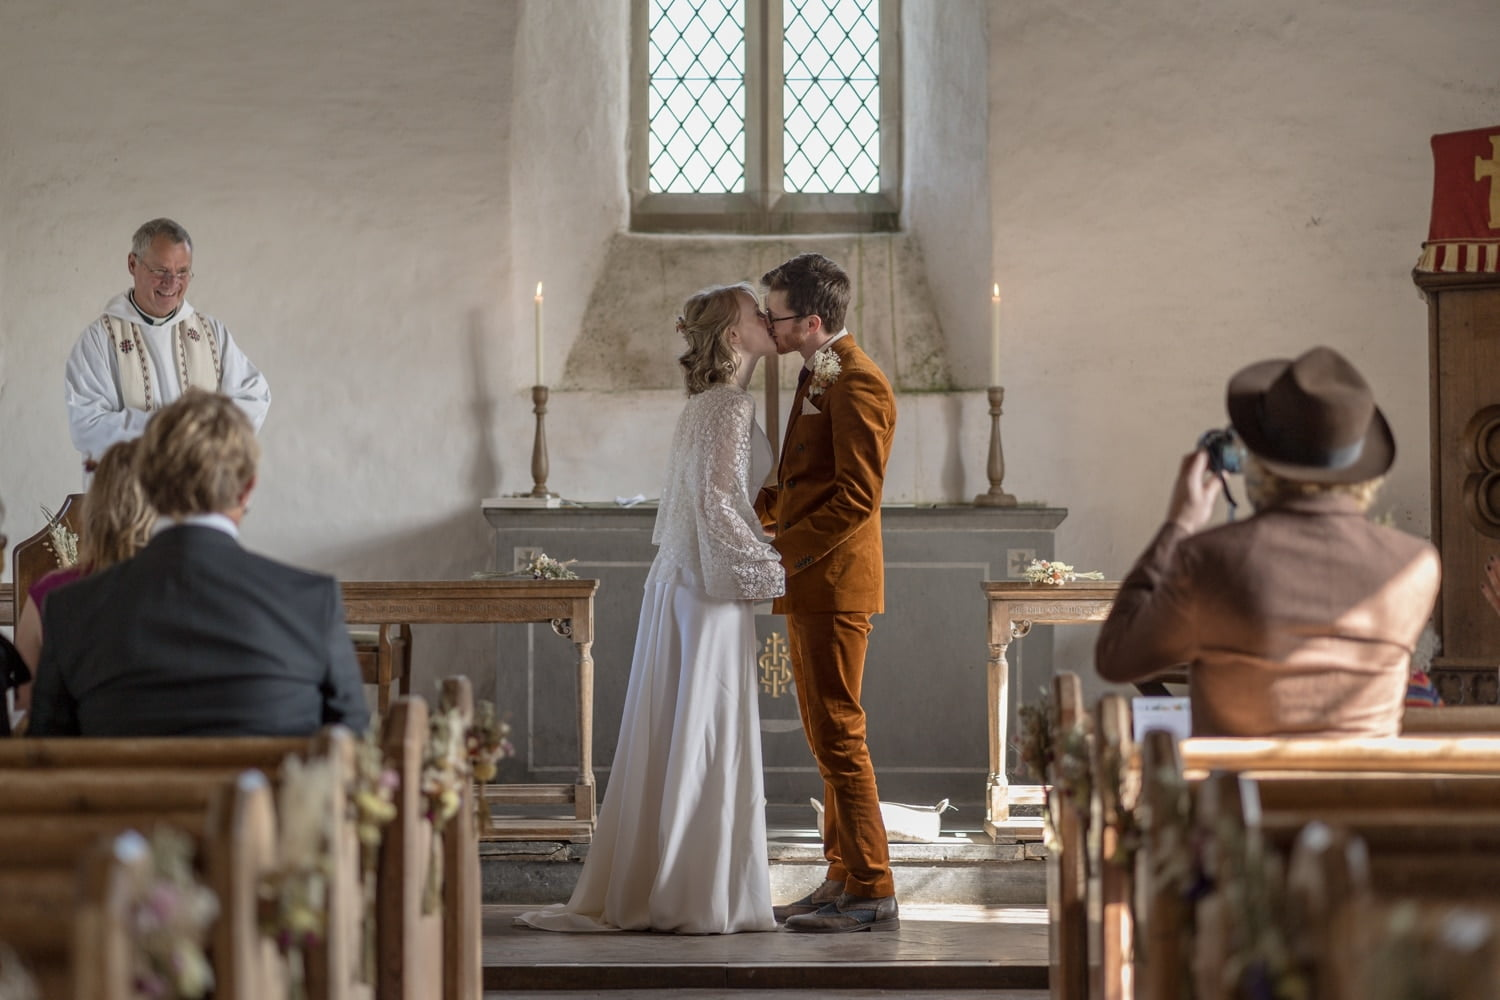 Bride and groom kissing during wedding ceremony at Mwnt Church, West Wales